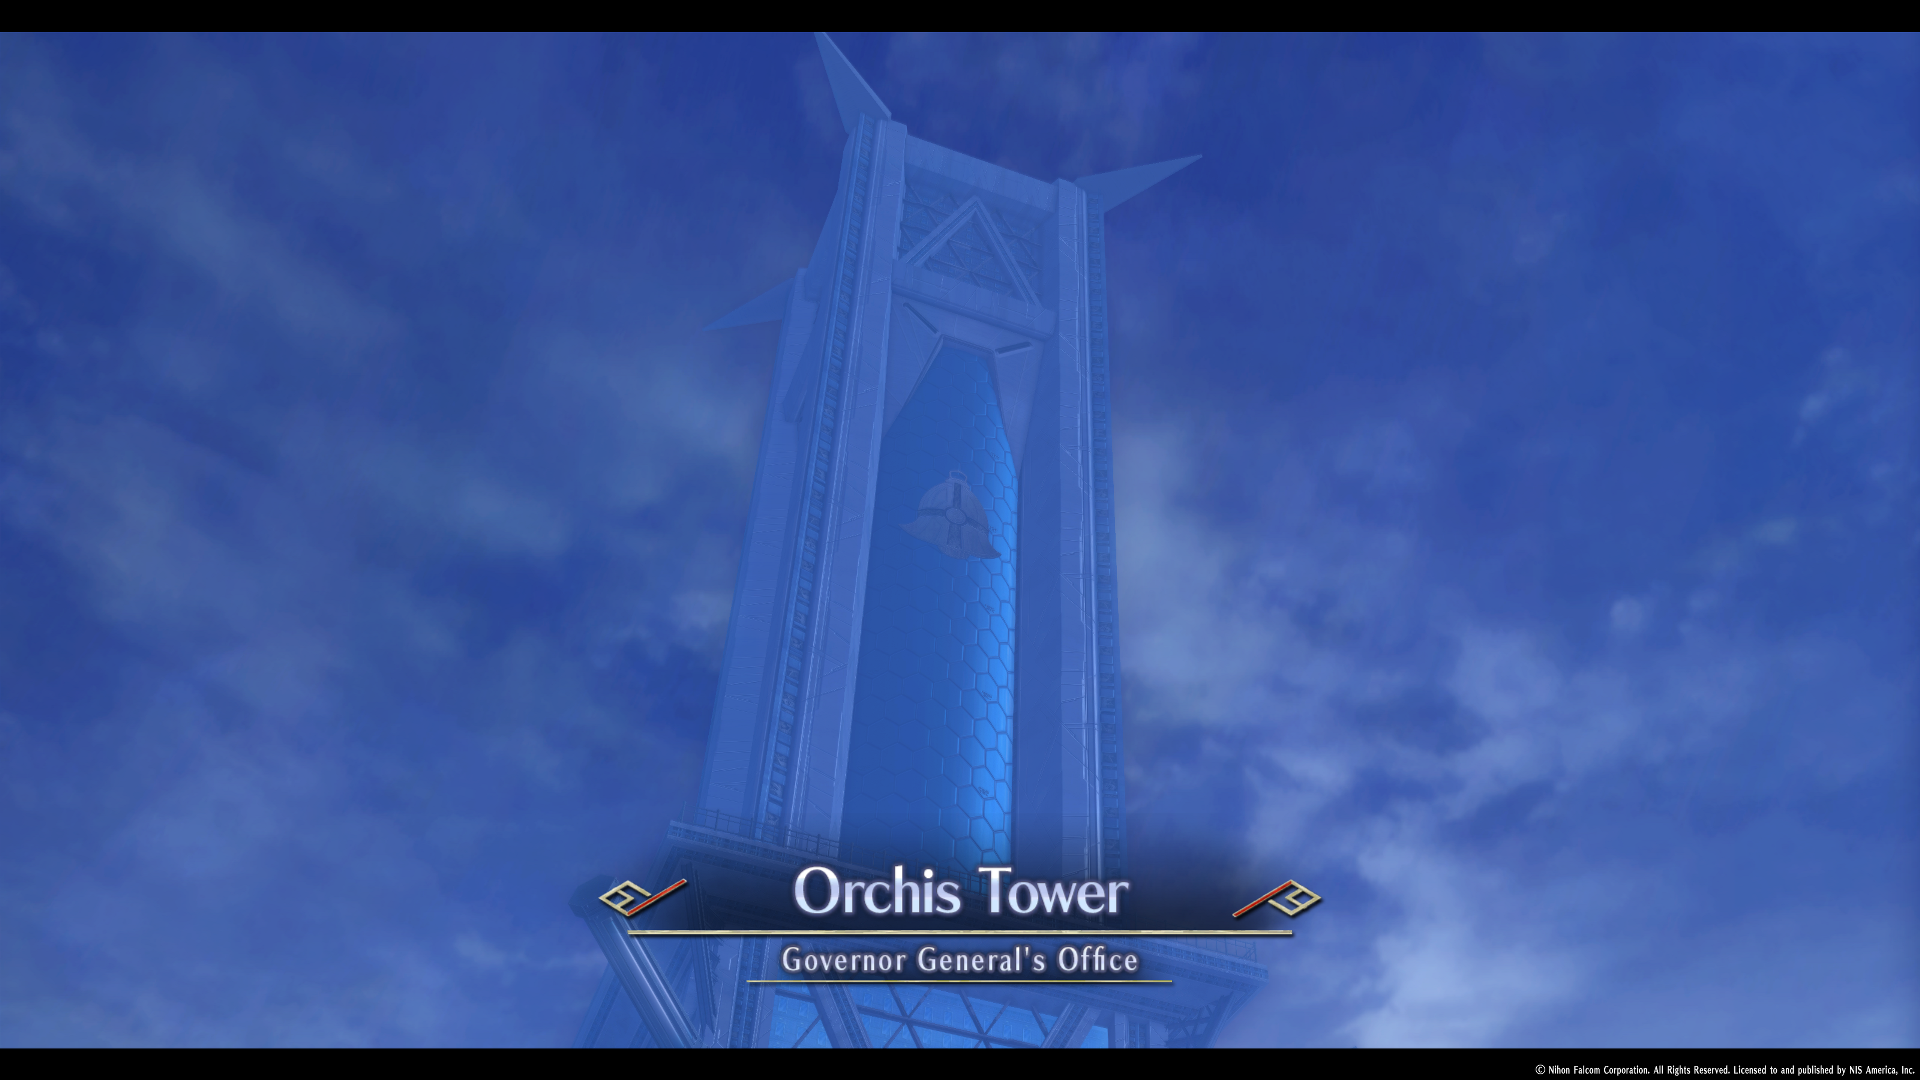 Orchis Tower